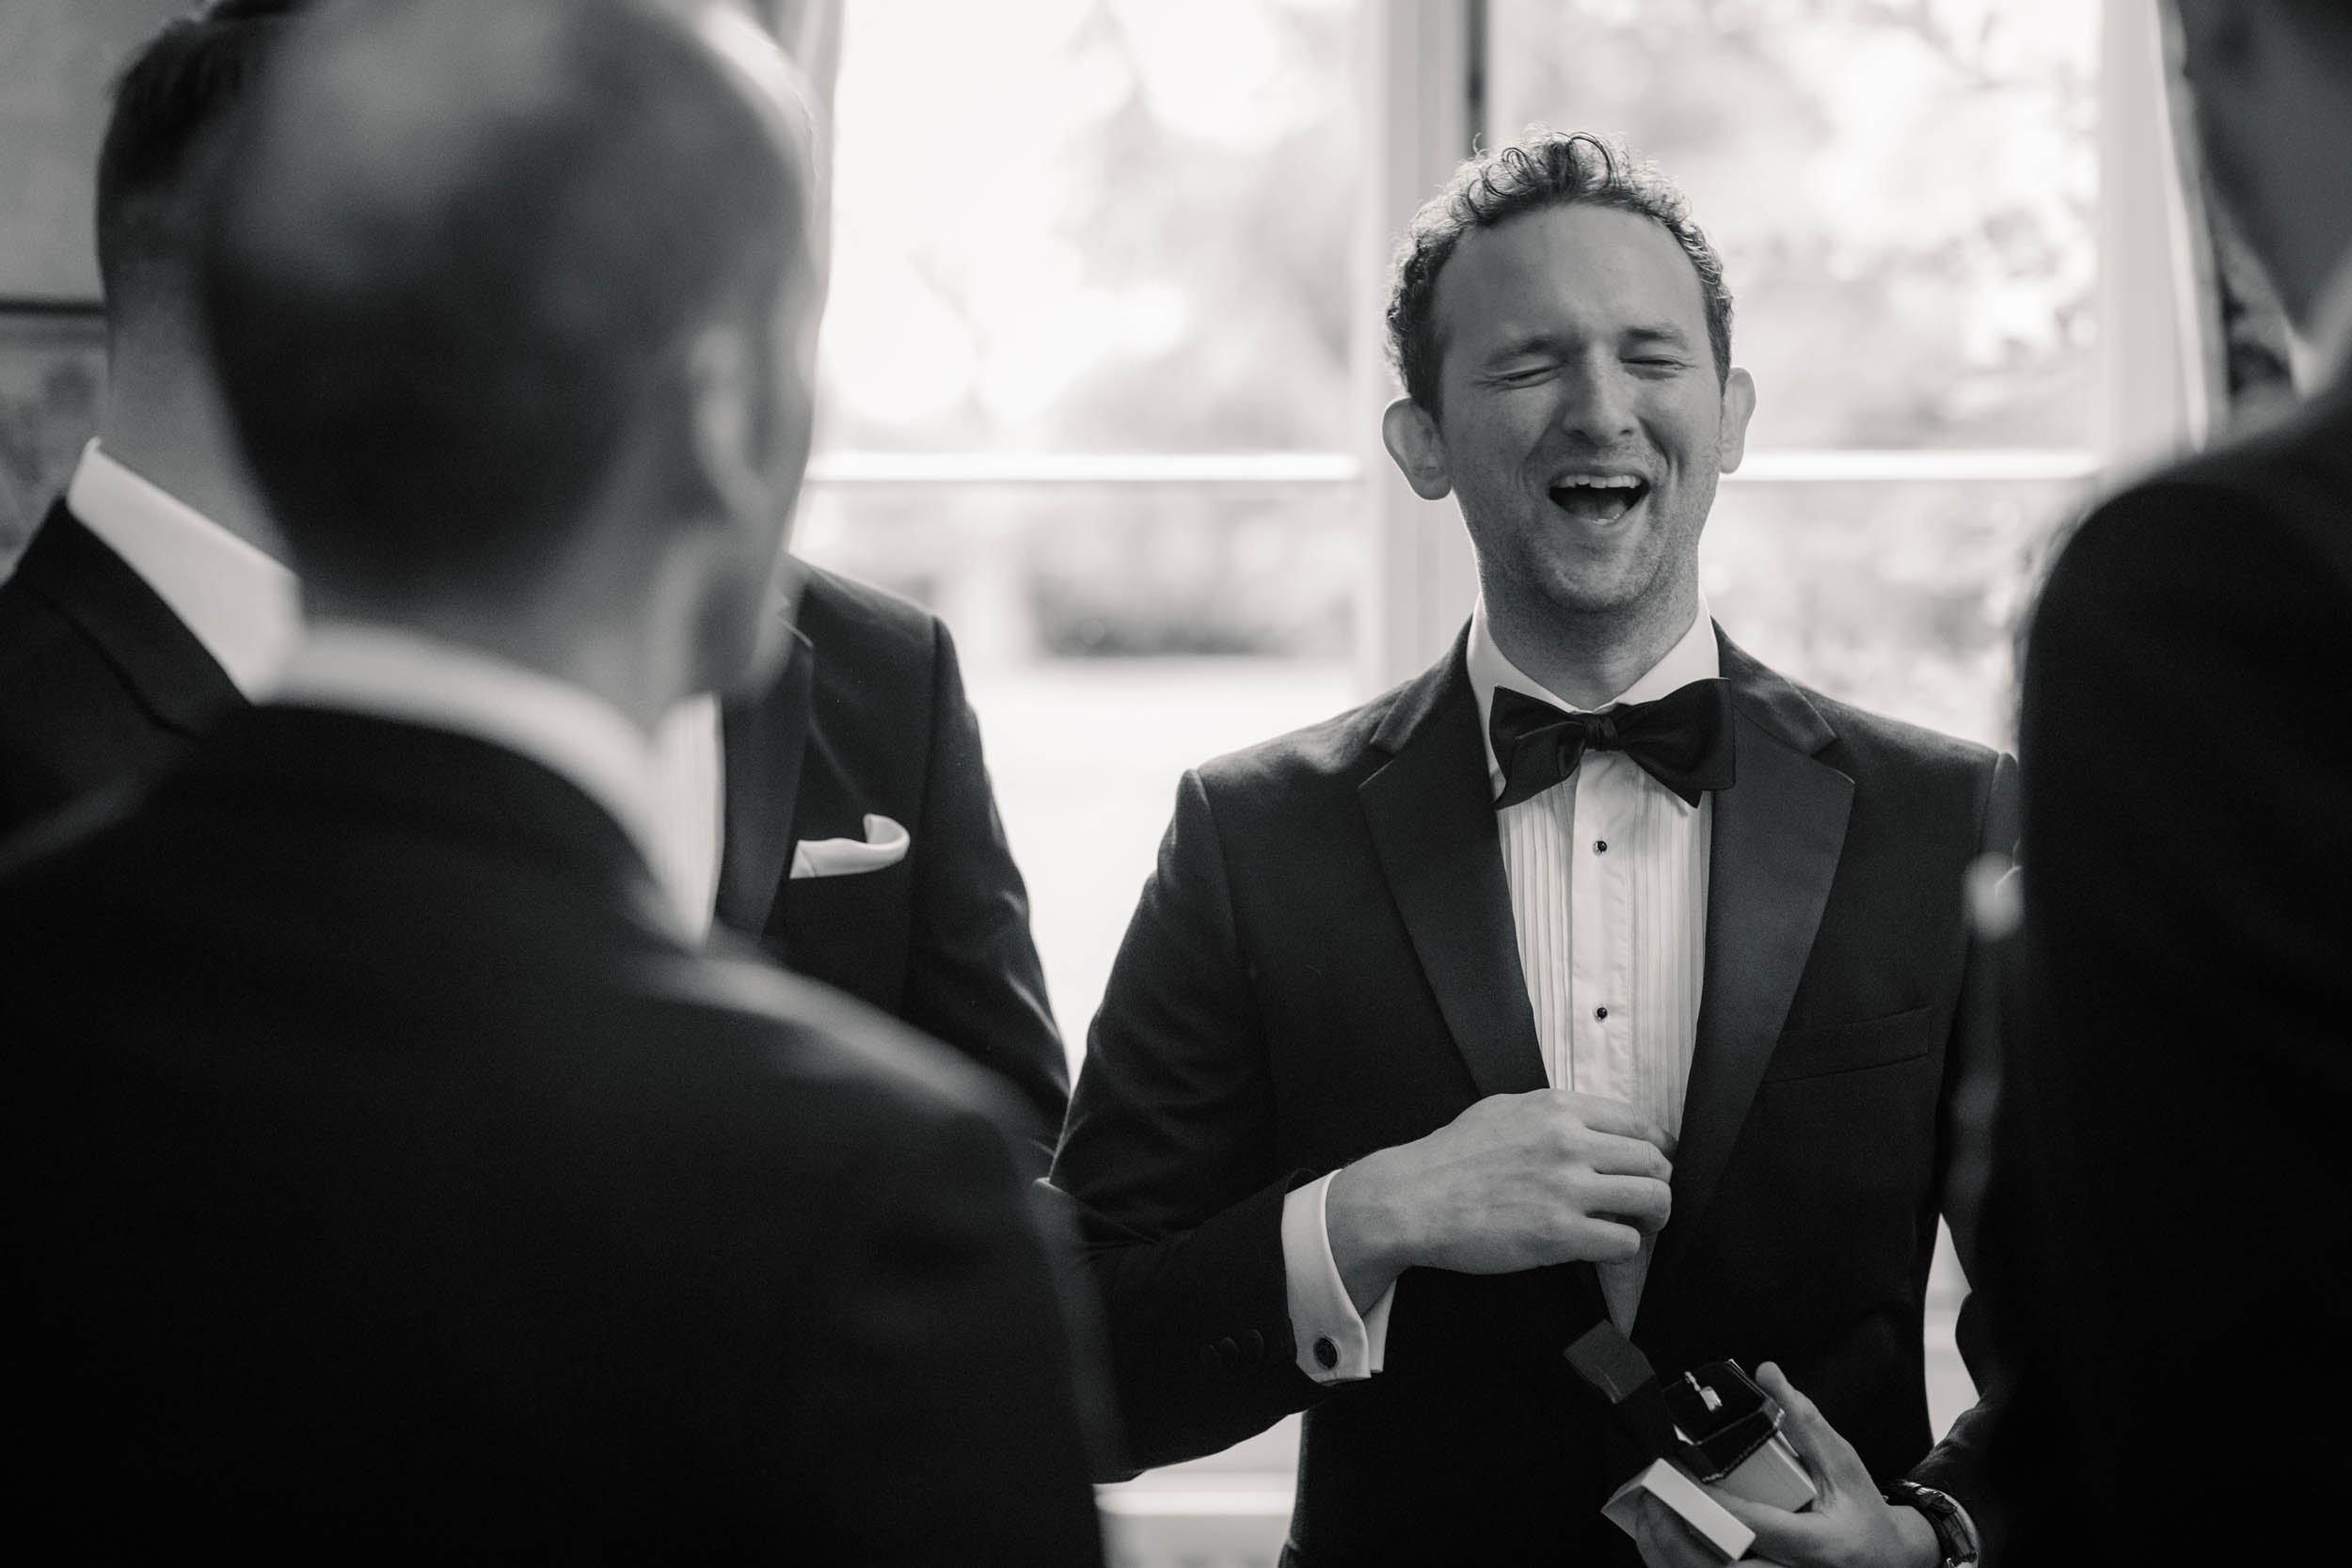 Groom laughing with ushers At autumnal Offley Place wedding taken by Becky Harley photography